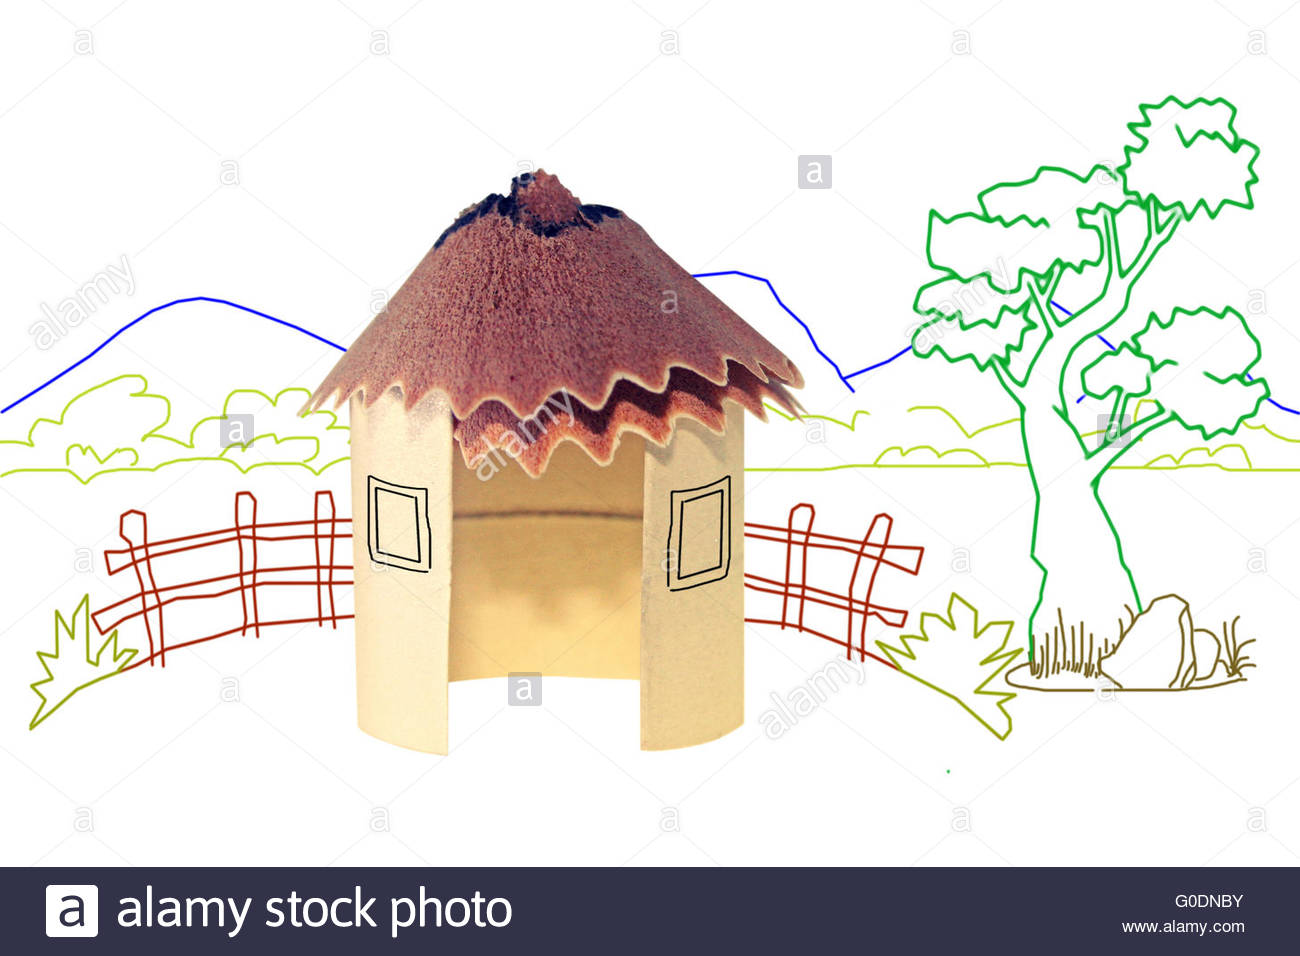 1300x956 Paper Hut, Pencil Shavings Roof With Line Drawing Background Stock